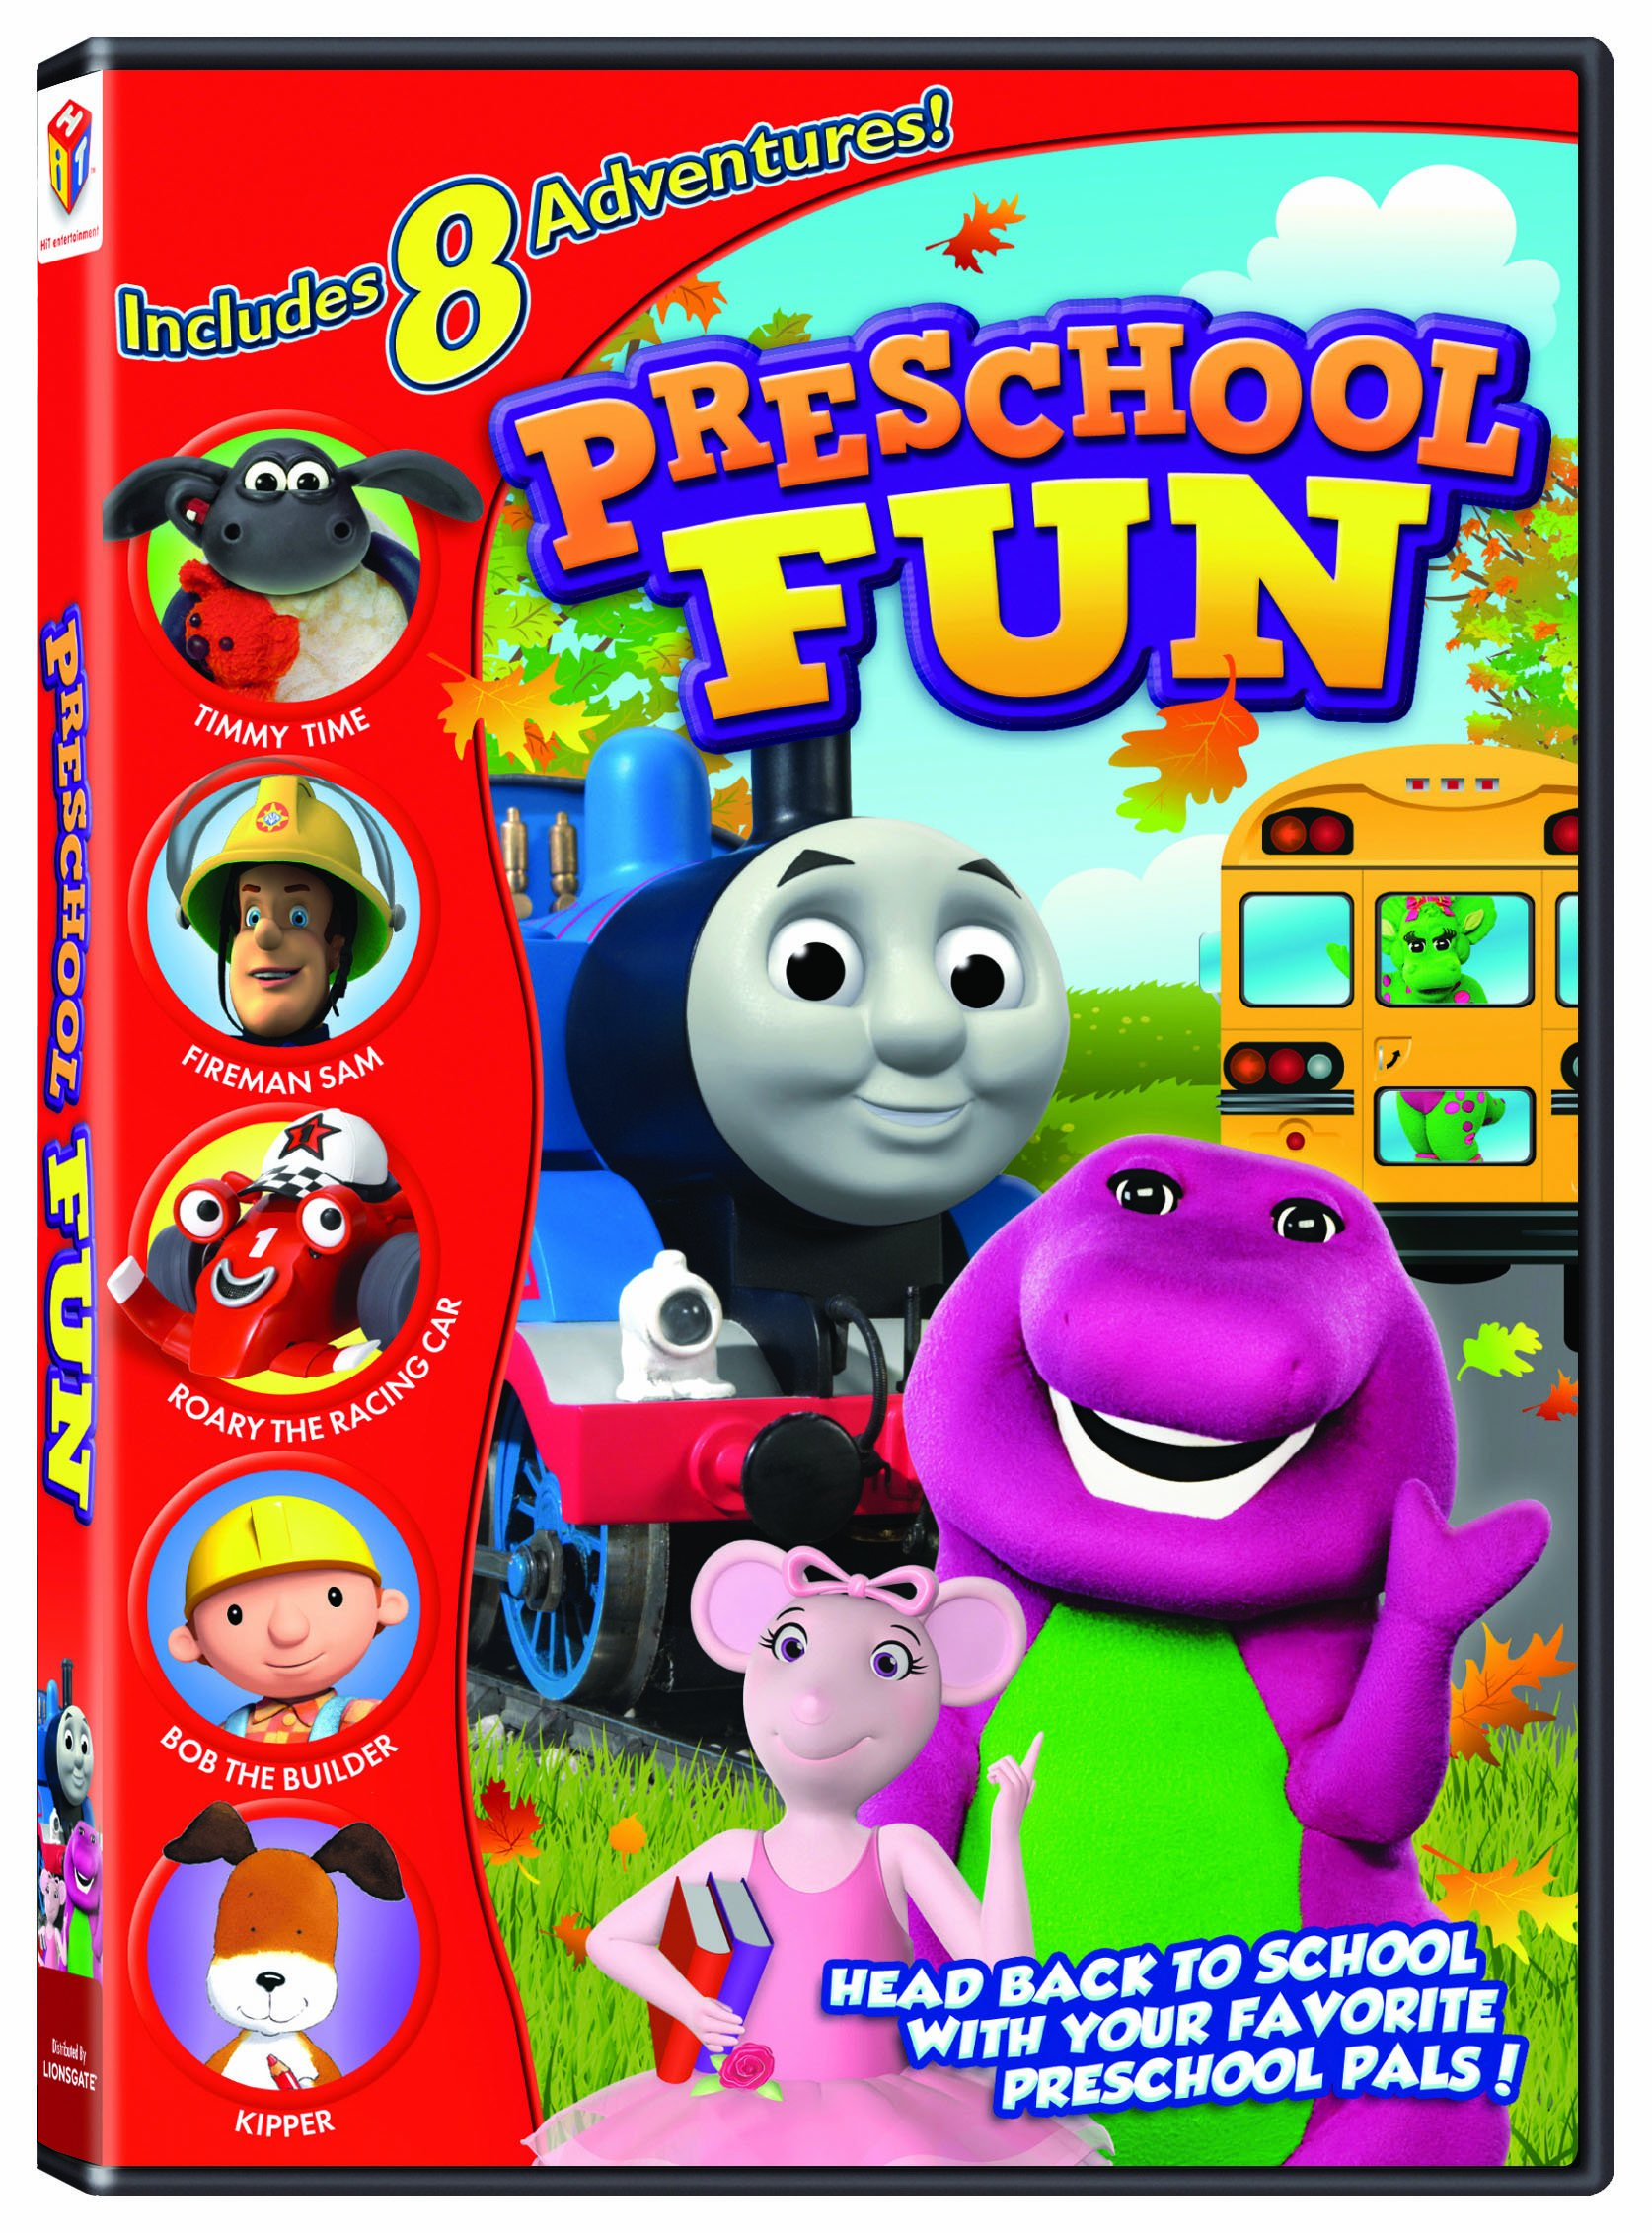 Hit Favorites Preschool Fun by Universal Studios Home Entertainment